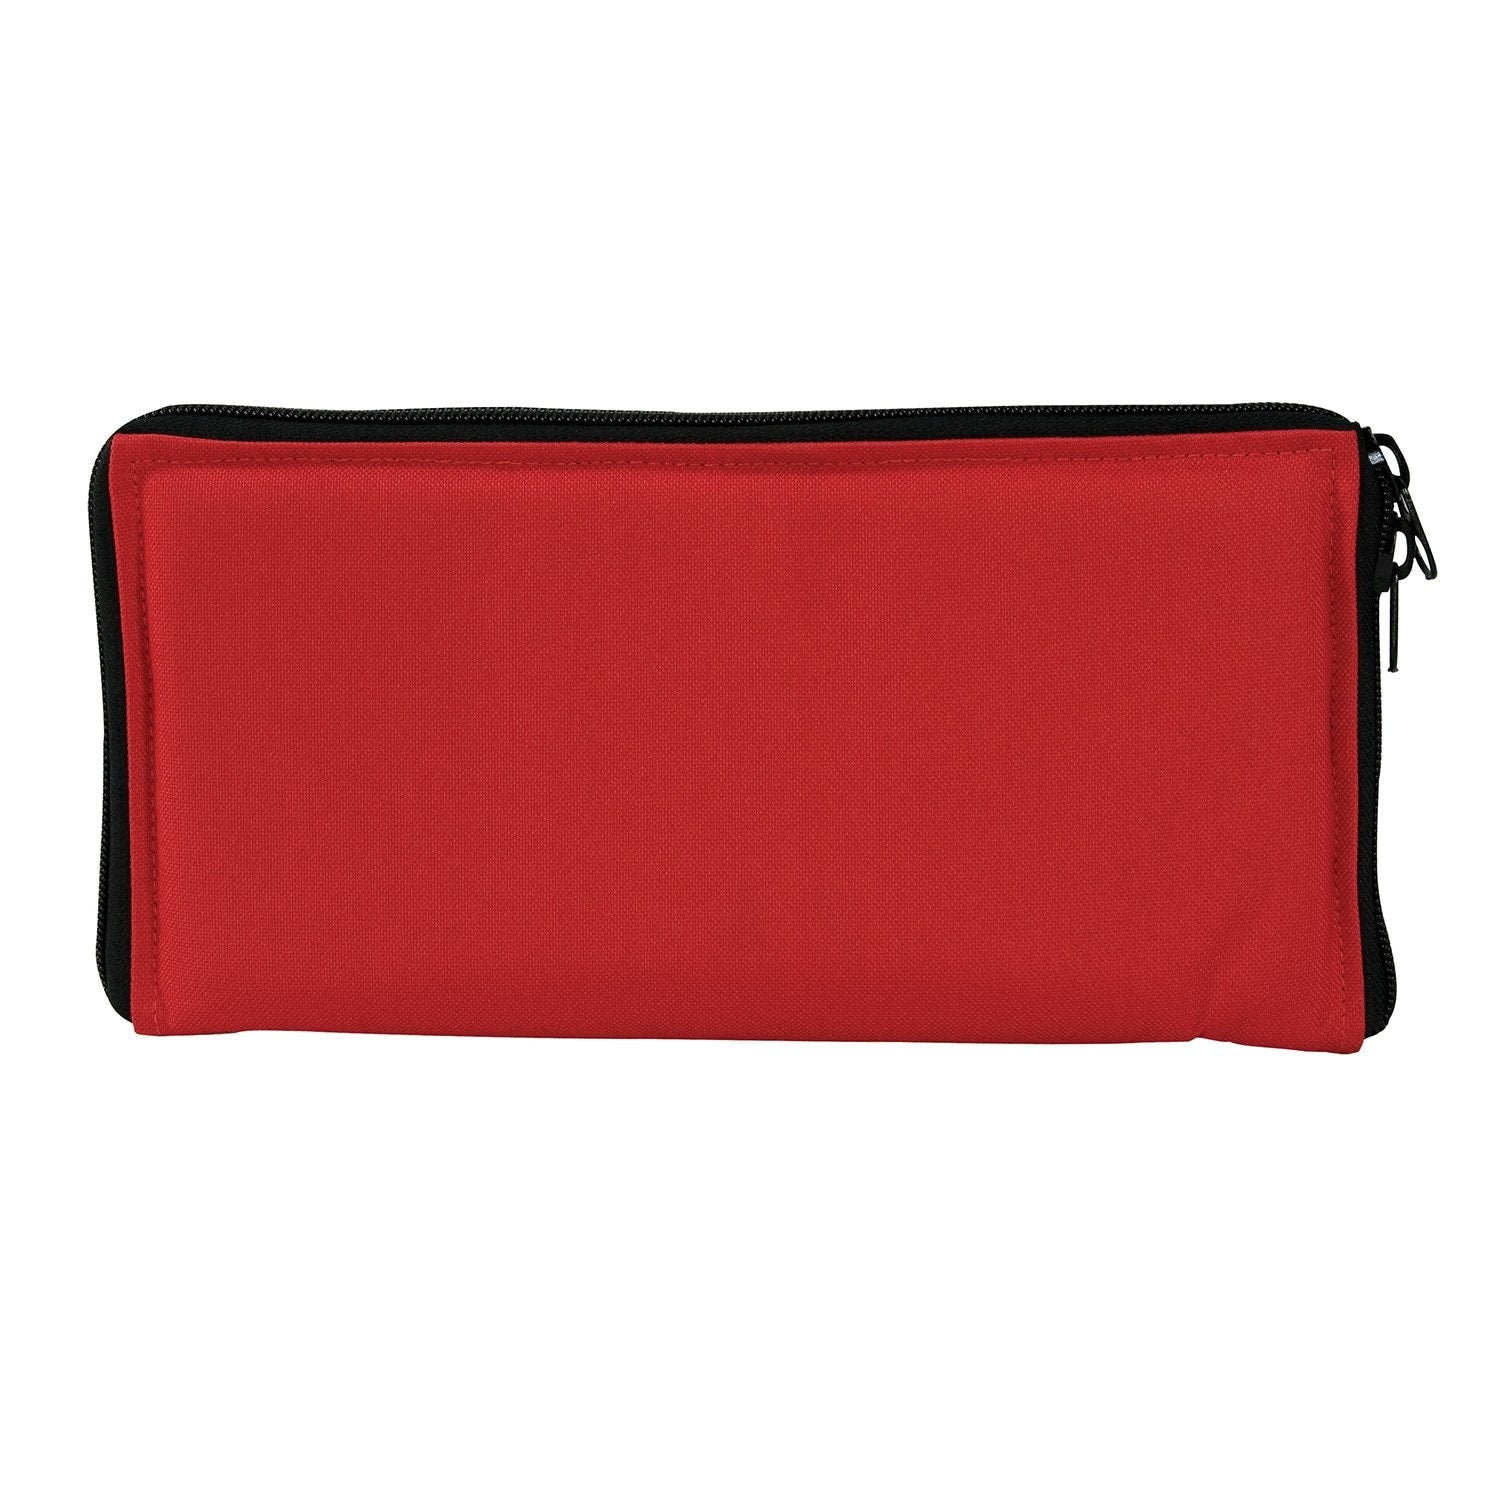 Range Bag Insert - Red - Range Bags And Accessories - Vism - Colonel Mustard